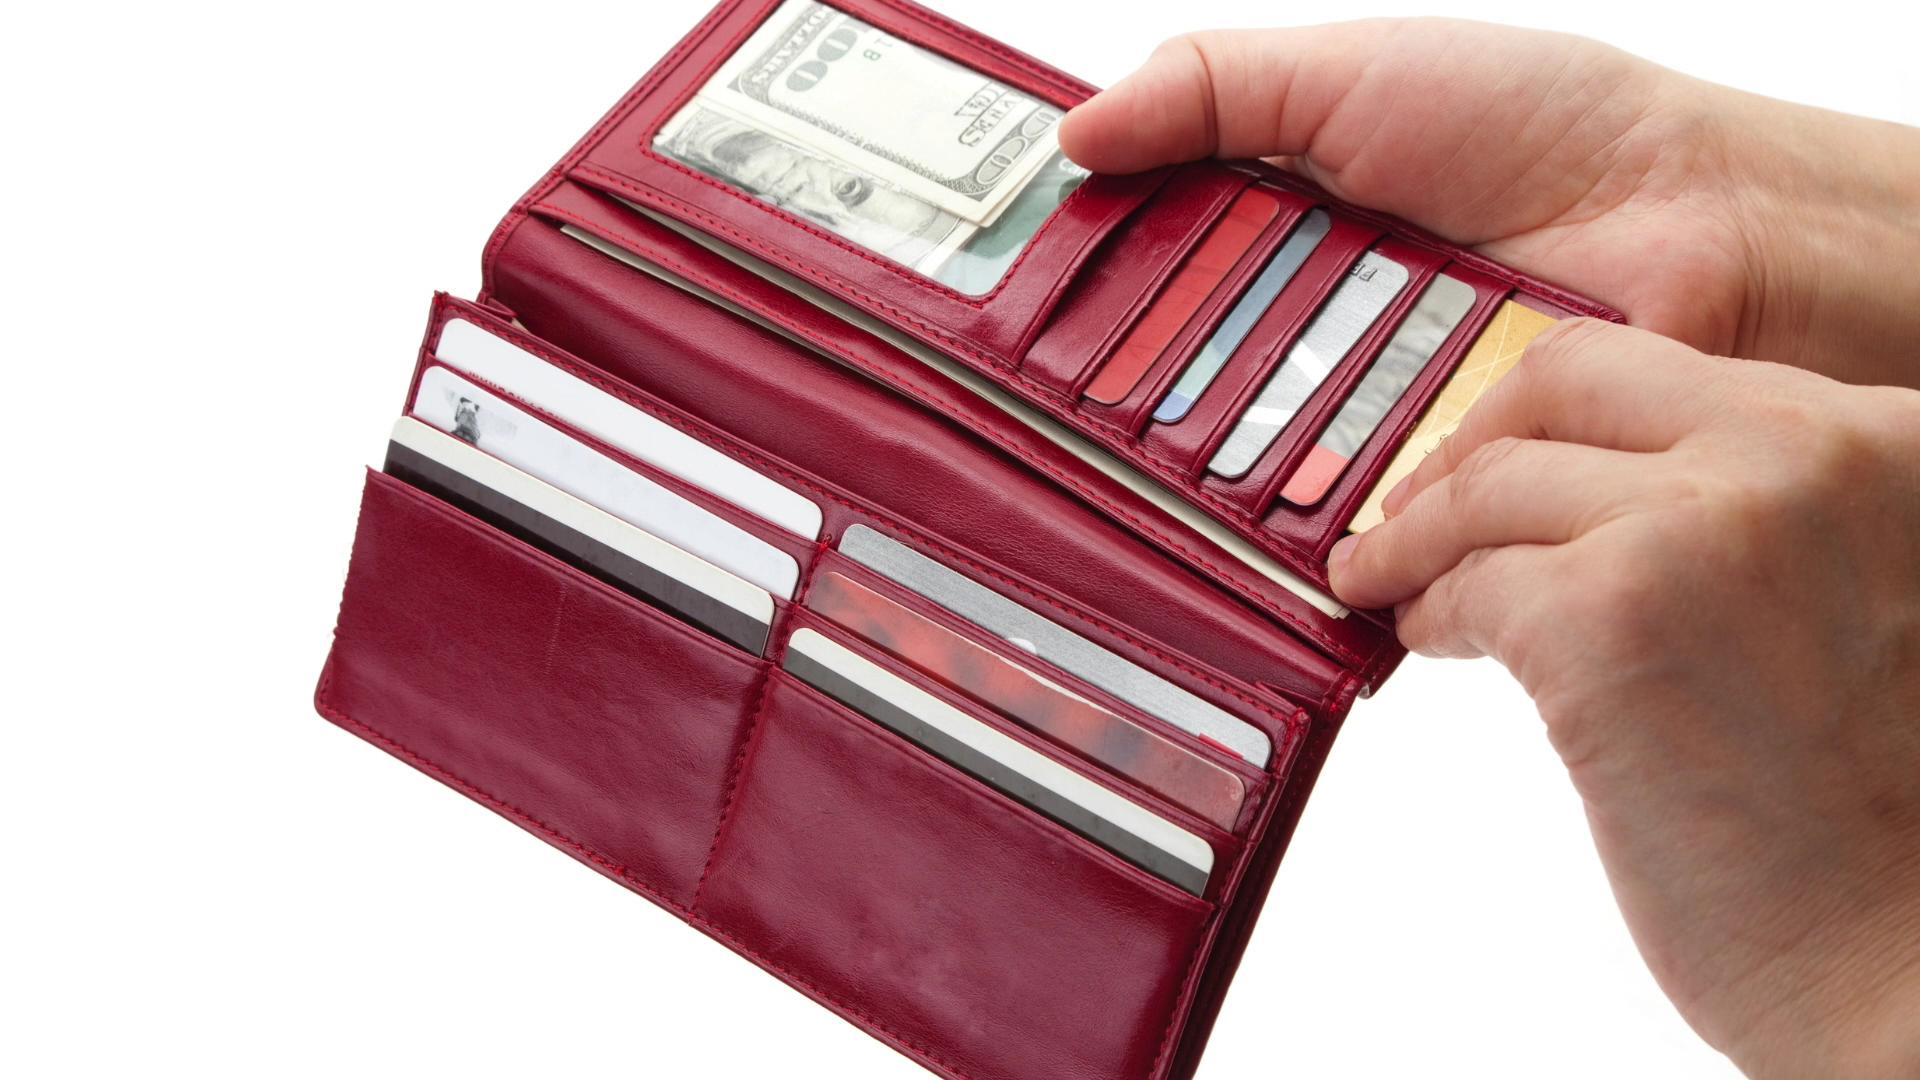 Don't carry these things in your wallet or purse